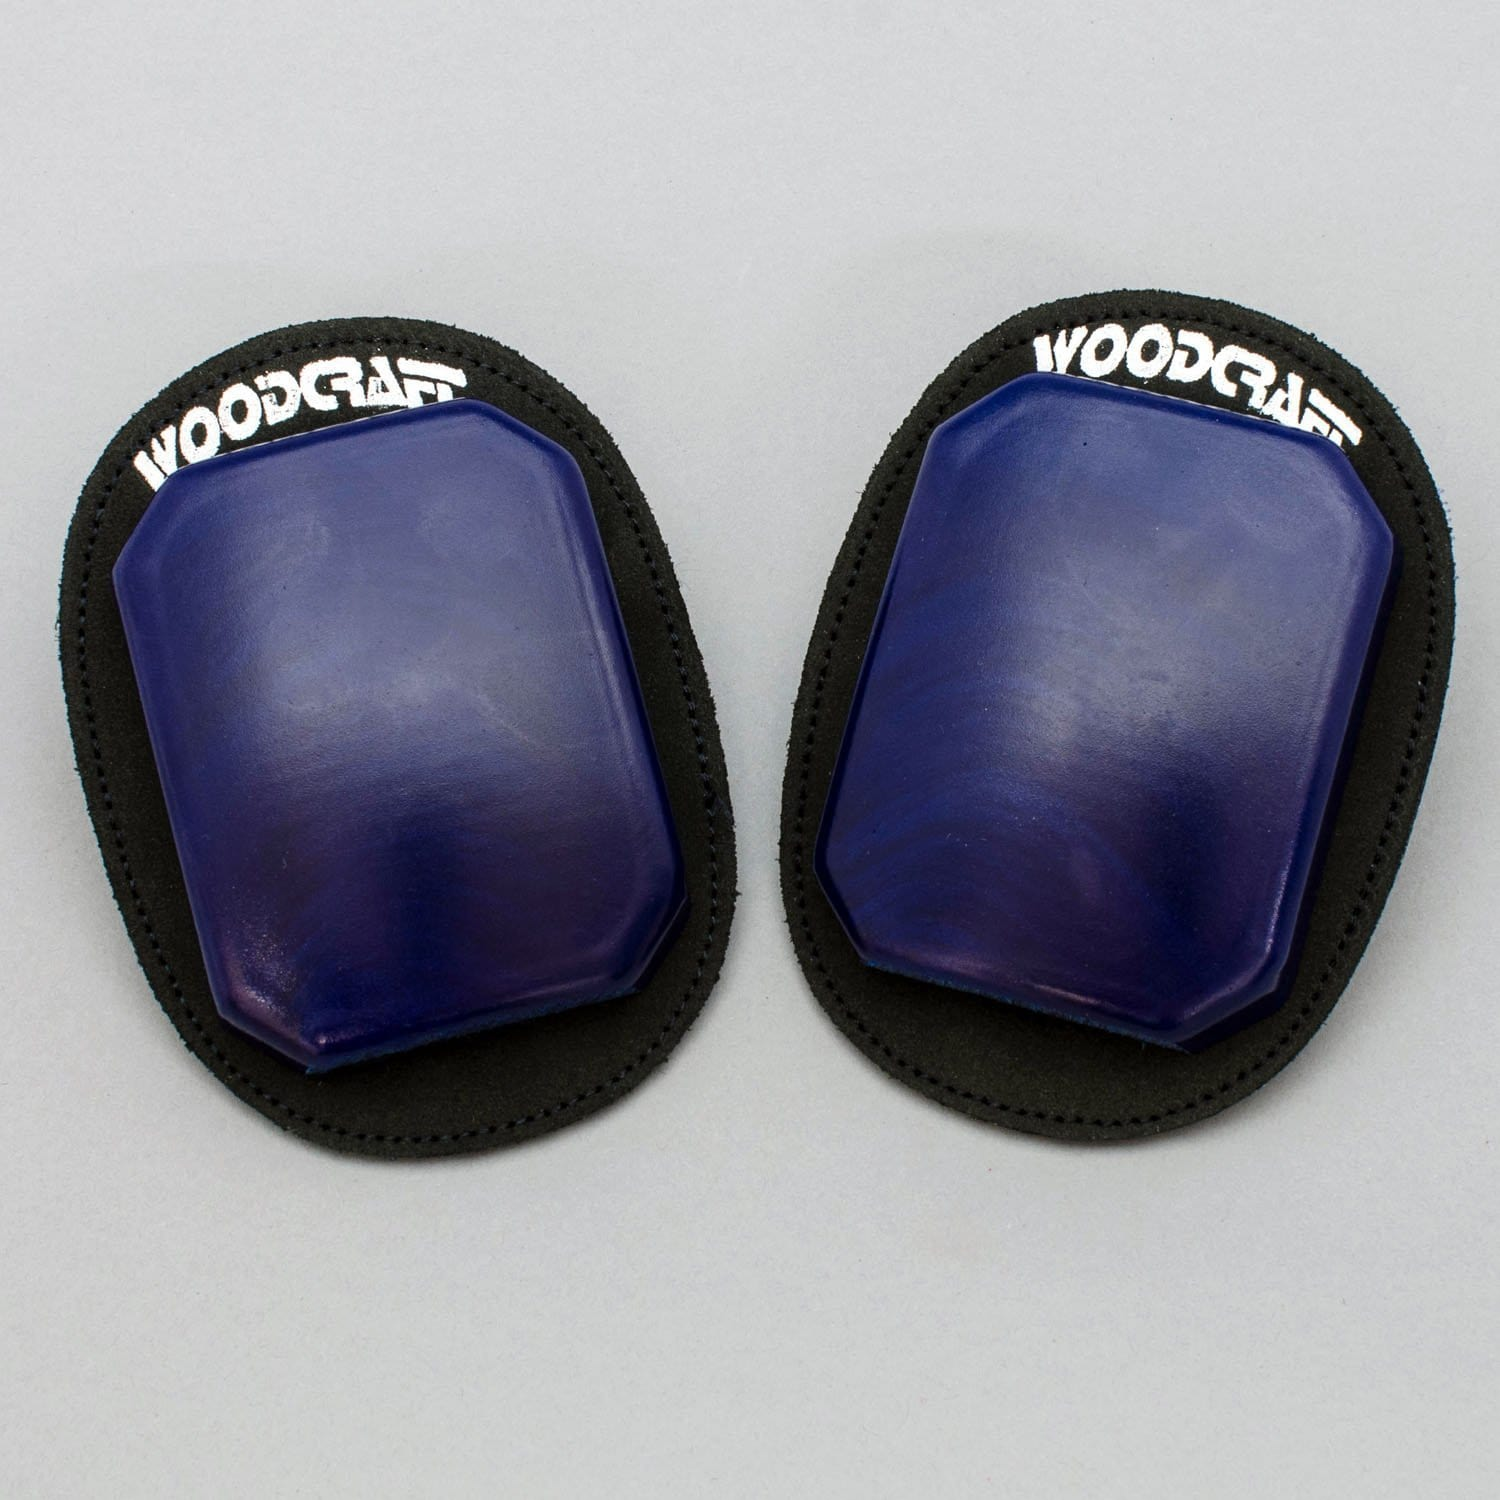 Woodcraft Klucky Pucks - Woodcraft Technologies - Motorcycle Parts